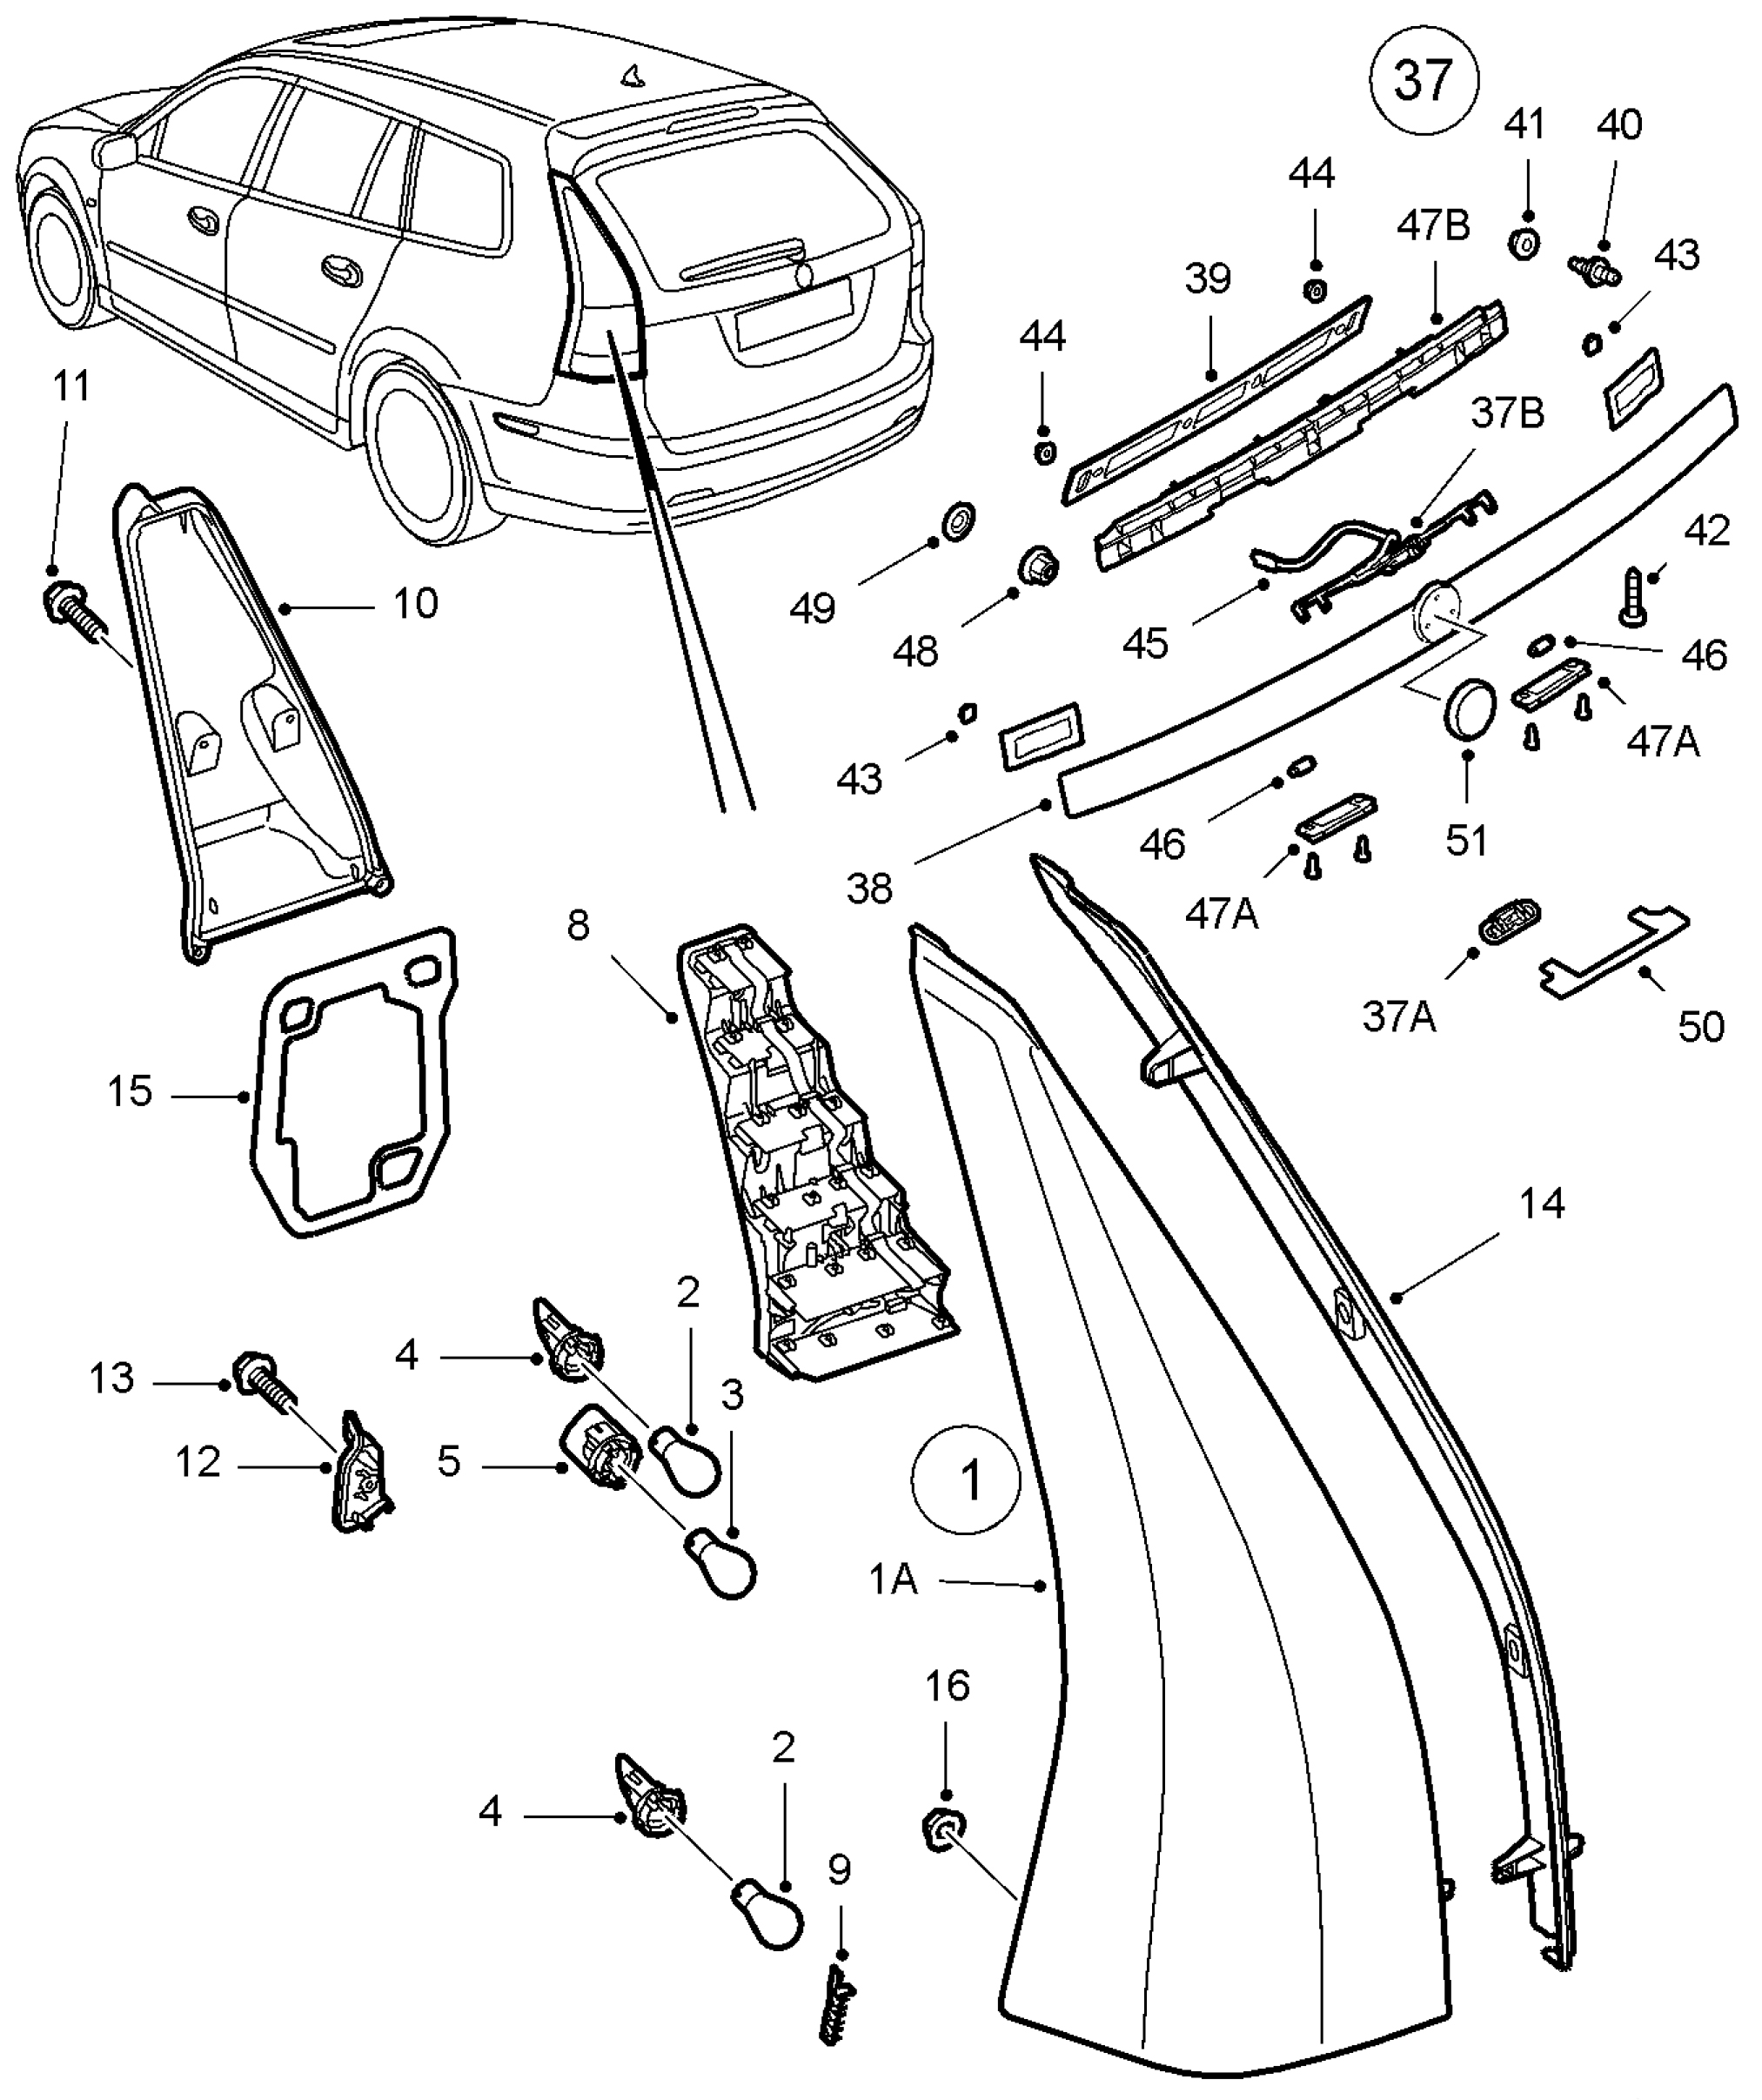 Search Results 93 Mustang Lights Wiring Diagram.html